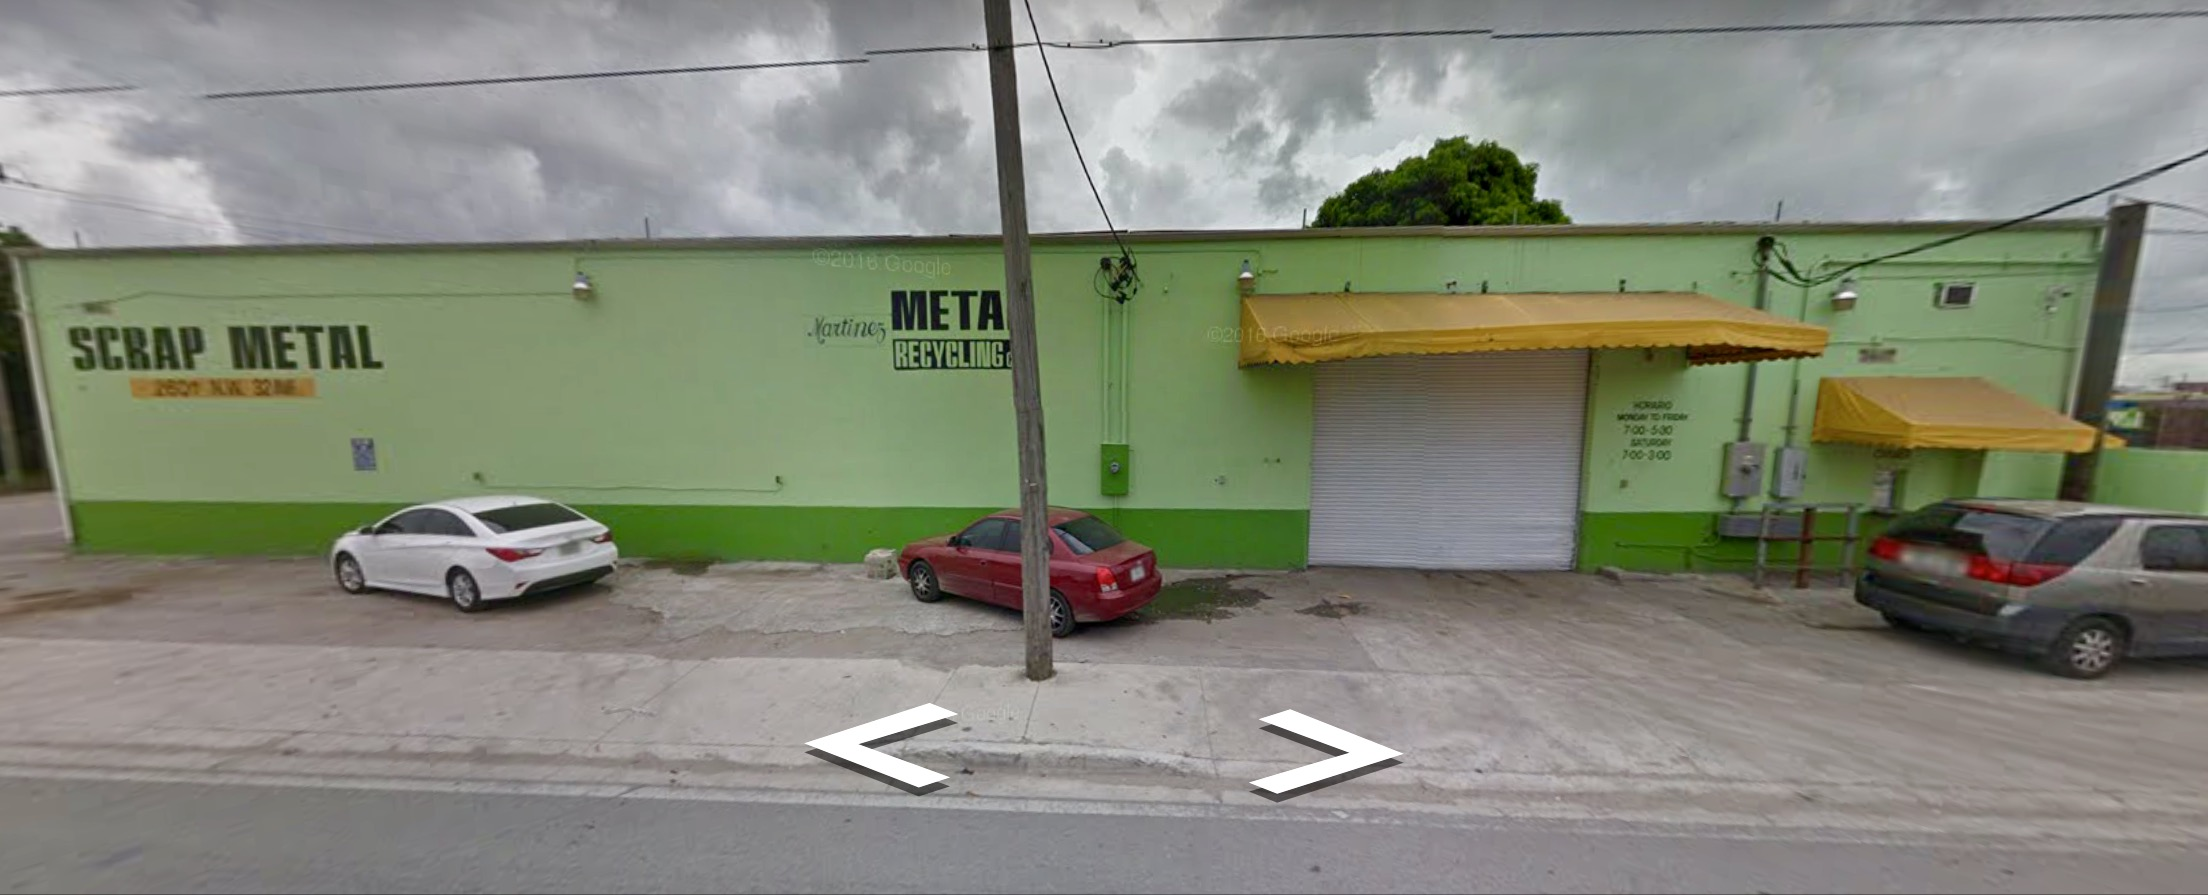 Martinez Metal Recycling 2601 NW 32nd Ave Miami FL 33142